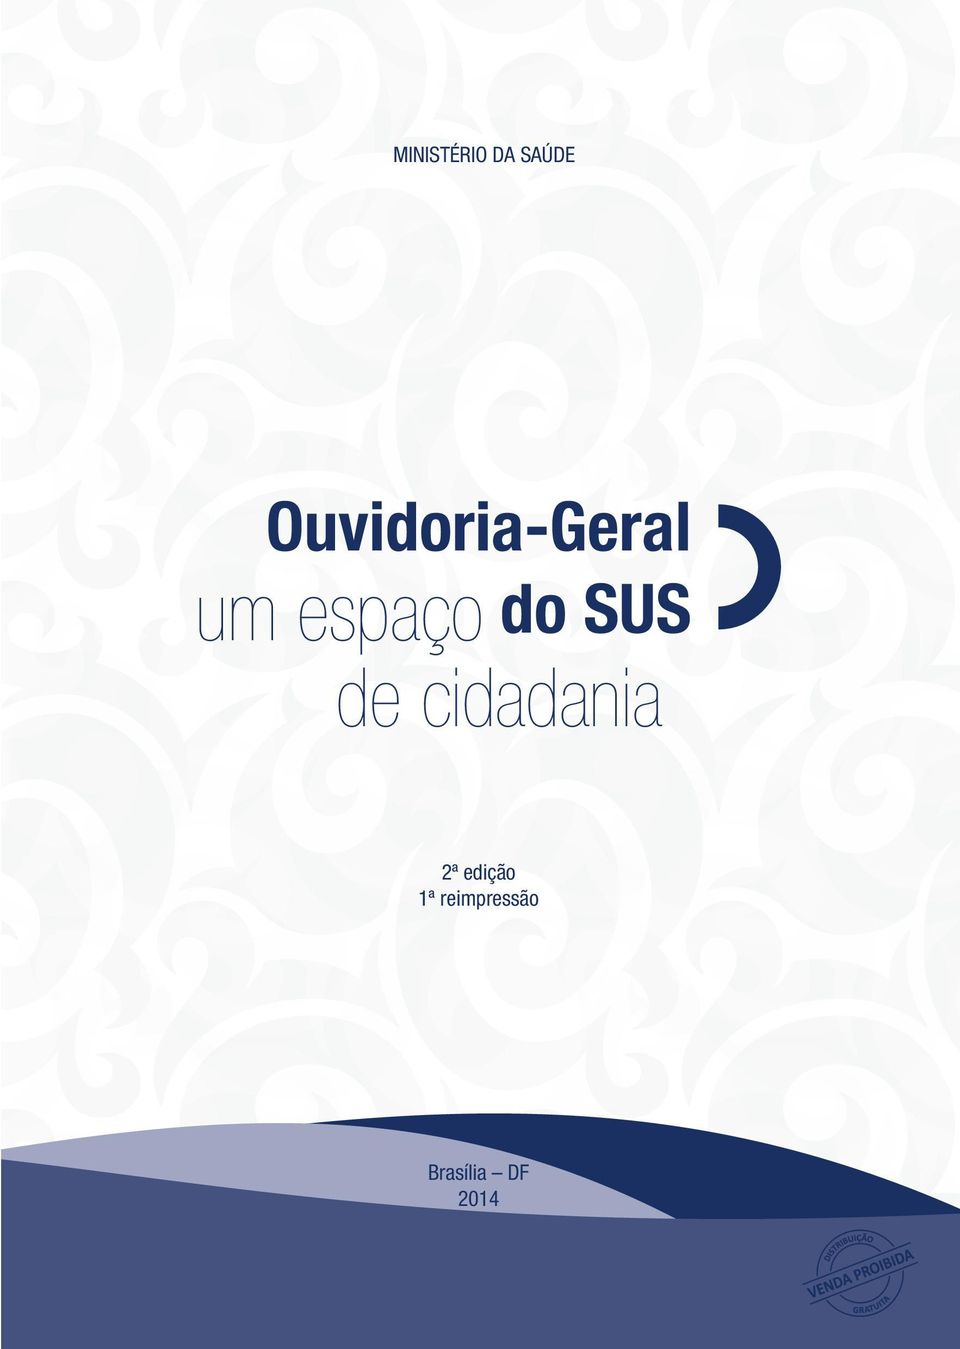 do sus de cidadania 2ª